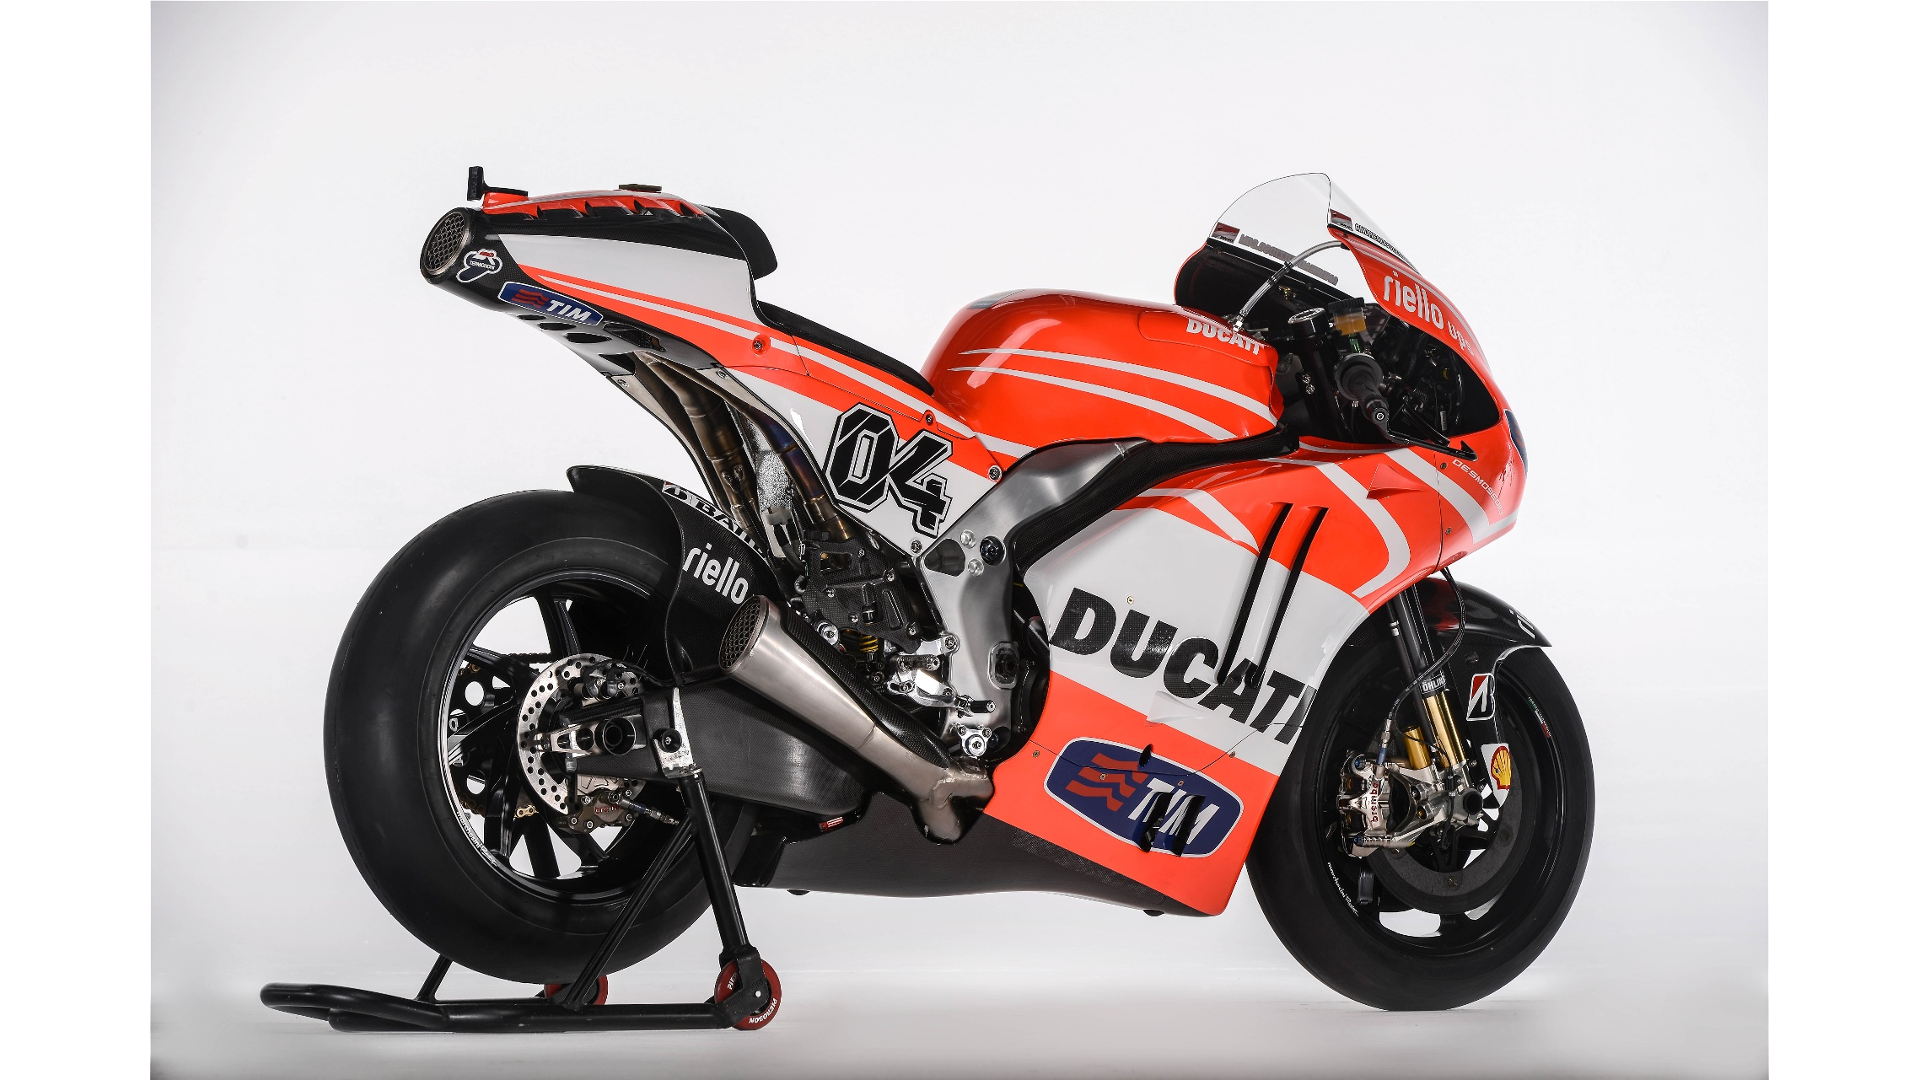 Ducati GP13 - Page 2 Resized_00036944.mediagallery_output_image_%5B1920x1080%5D-O